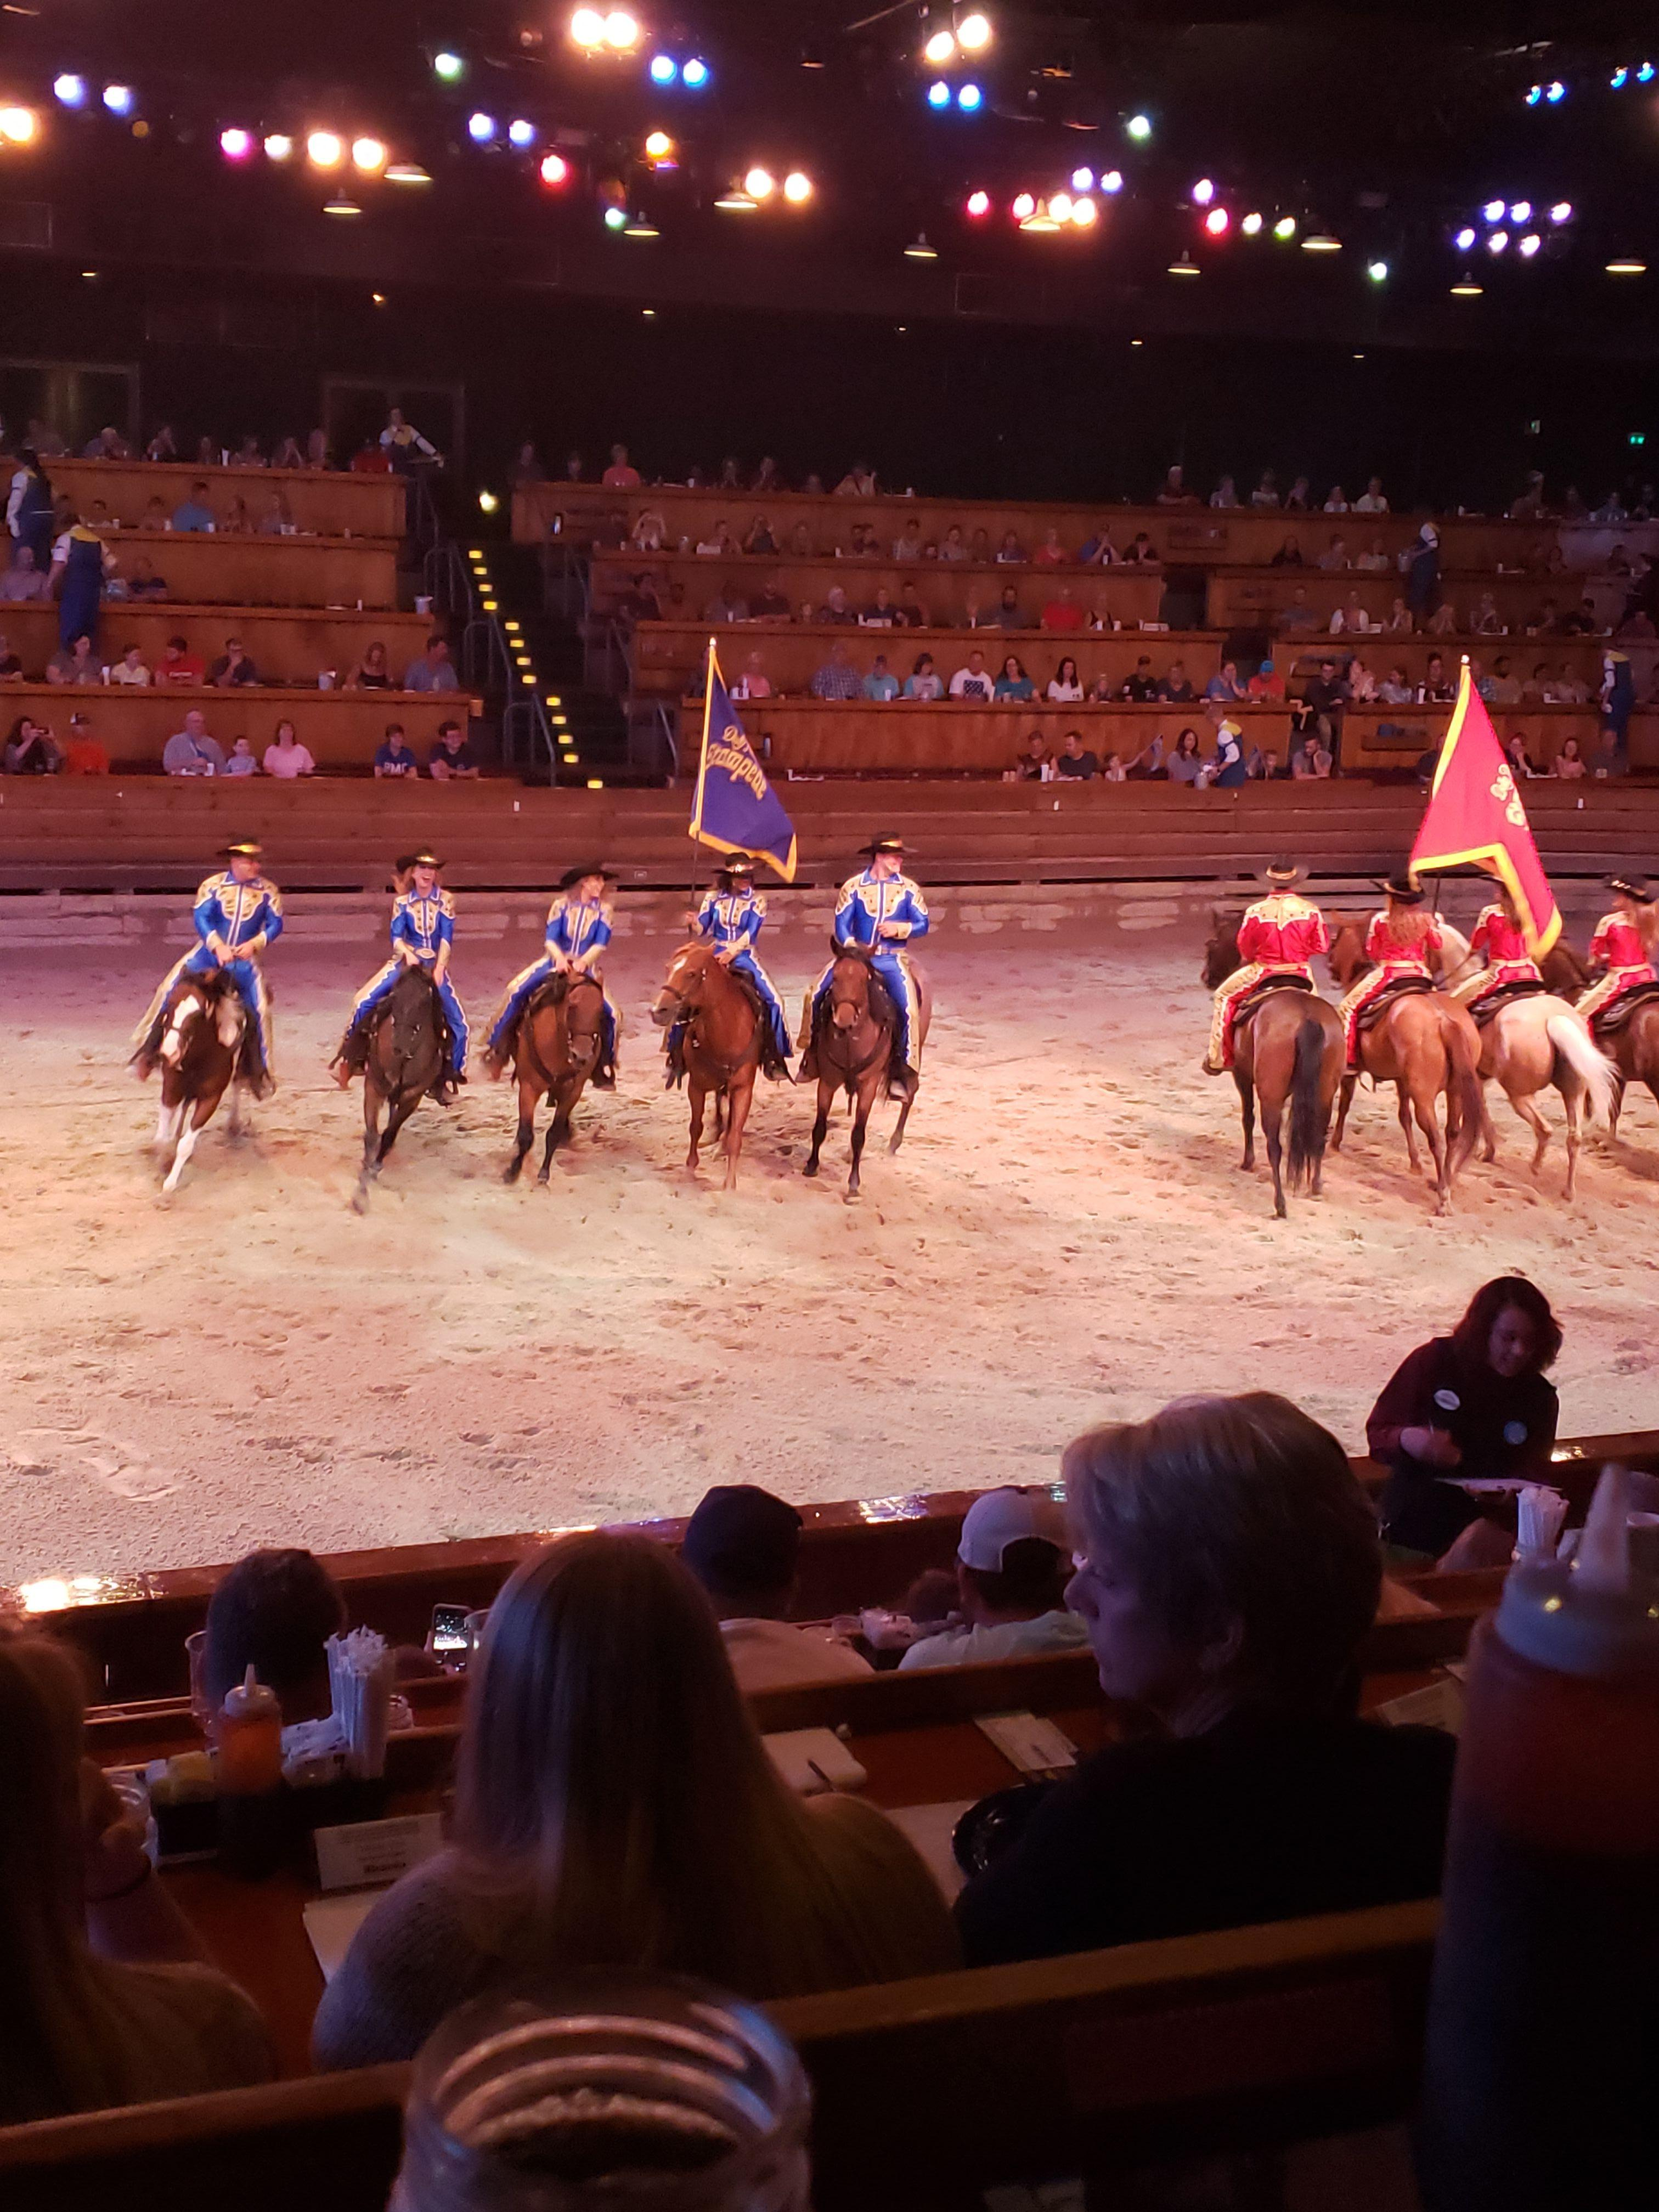 Riding Horses at Dolly Parton's Stampede Dinner Show Pigeon Forge